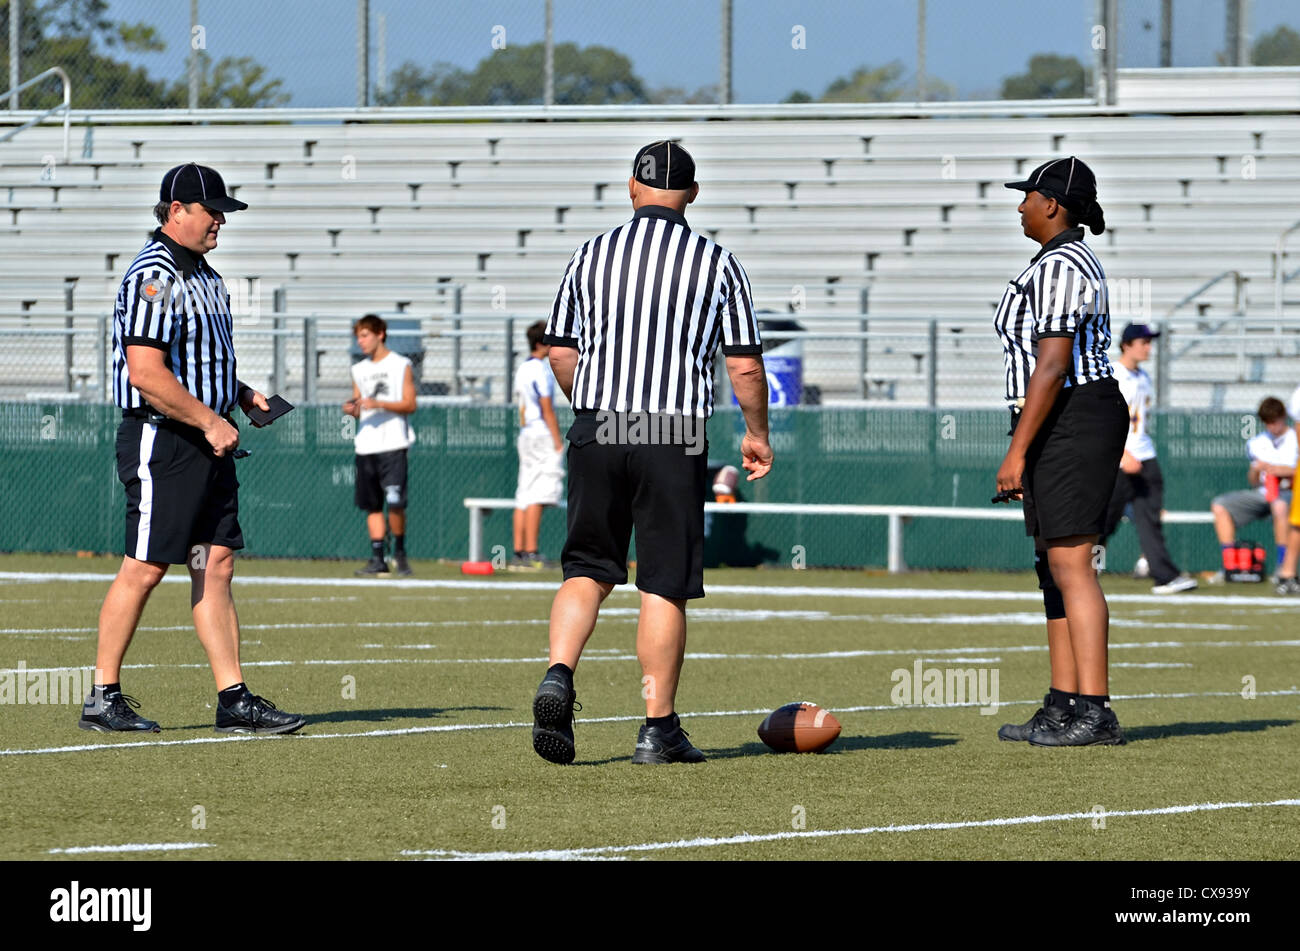 Three referees, two men and a woman, discussing a play on the field during a youth football game. - Stock Image